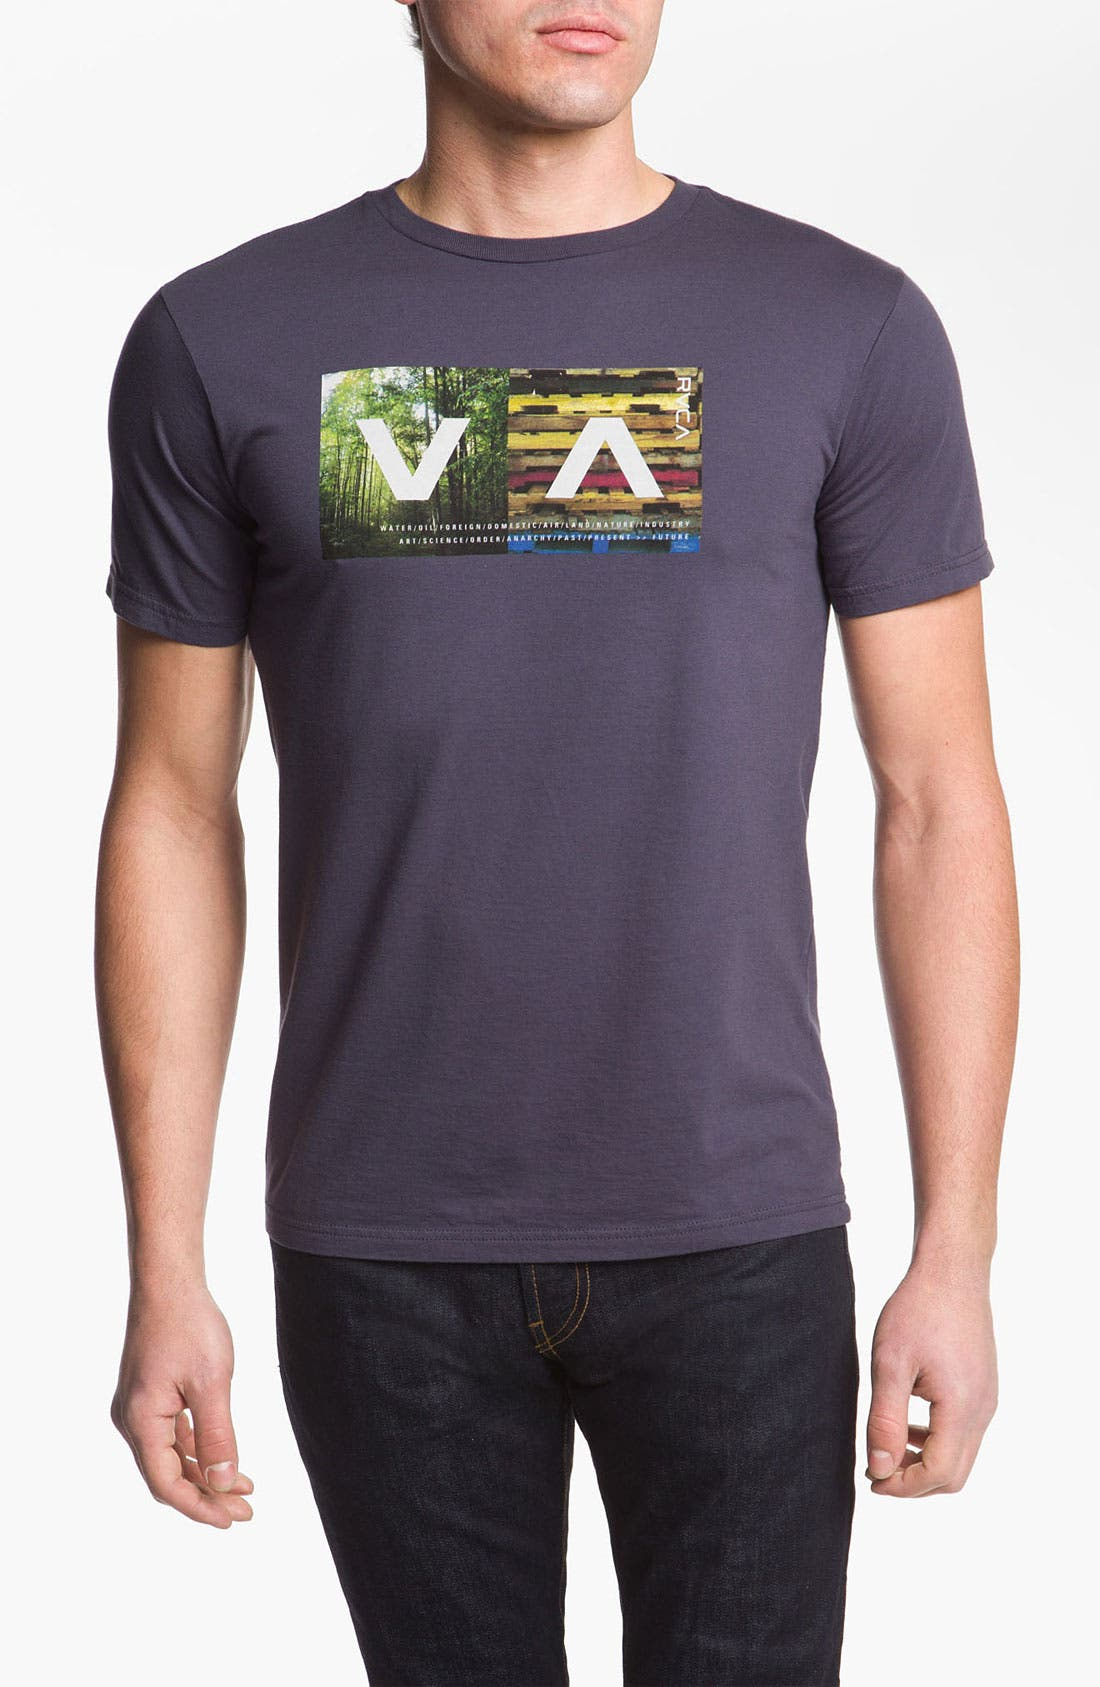 Main Image - RVCA 'The Woods' Graphic T-Shirt